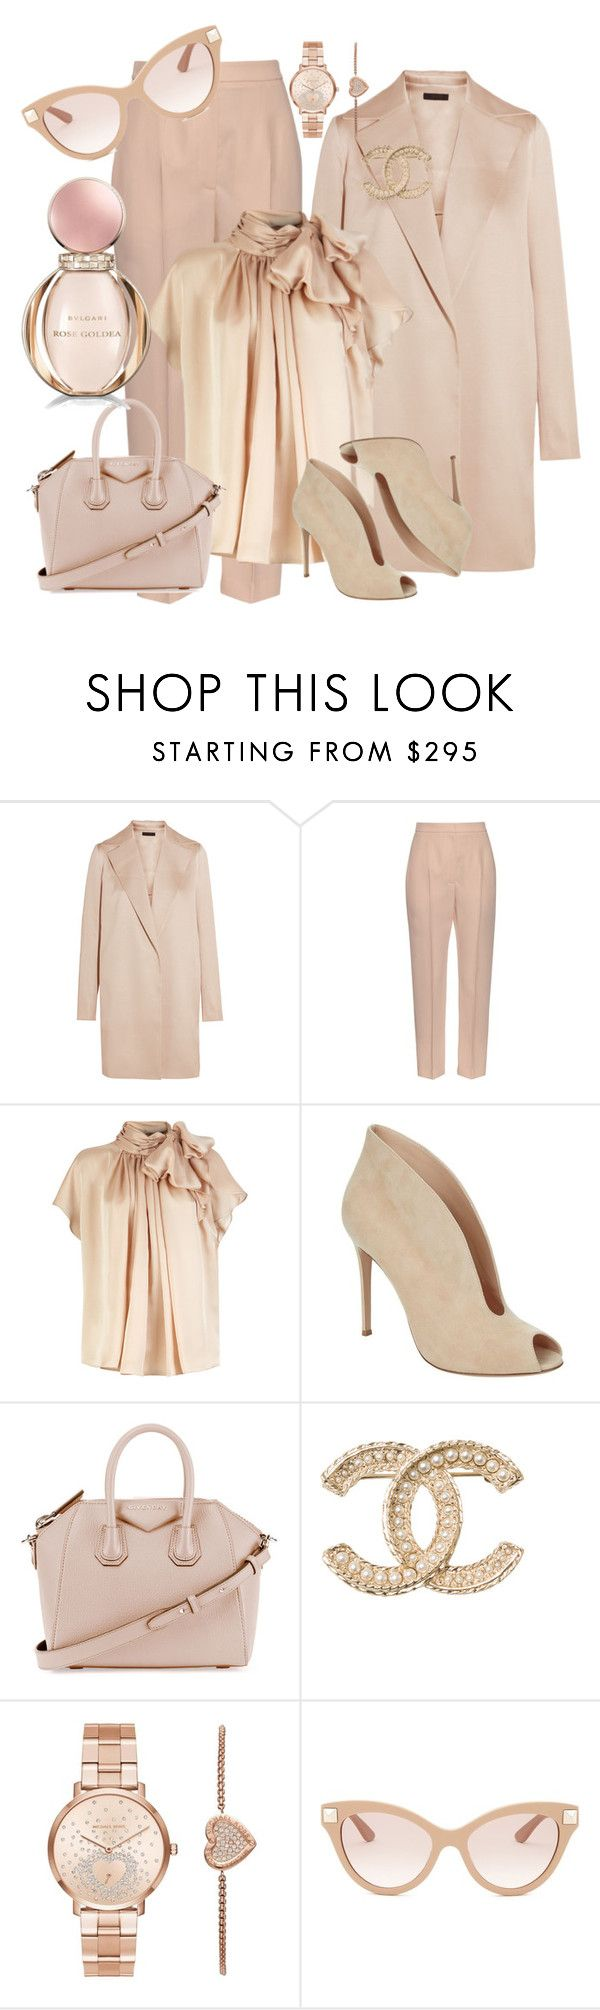 """""""COLOR OF FASHION   *148"""" by justalittlestar ❤ liked on Polyvore featuring The Row, Alexander McQueen, Gianvito Rossi, Givenchy, Chanel, Michael Kors, Valentino and Bulgari"""